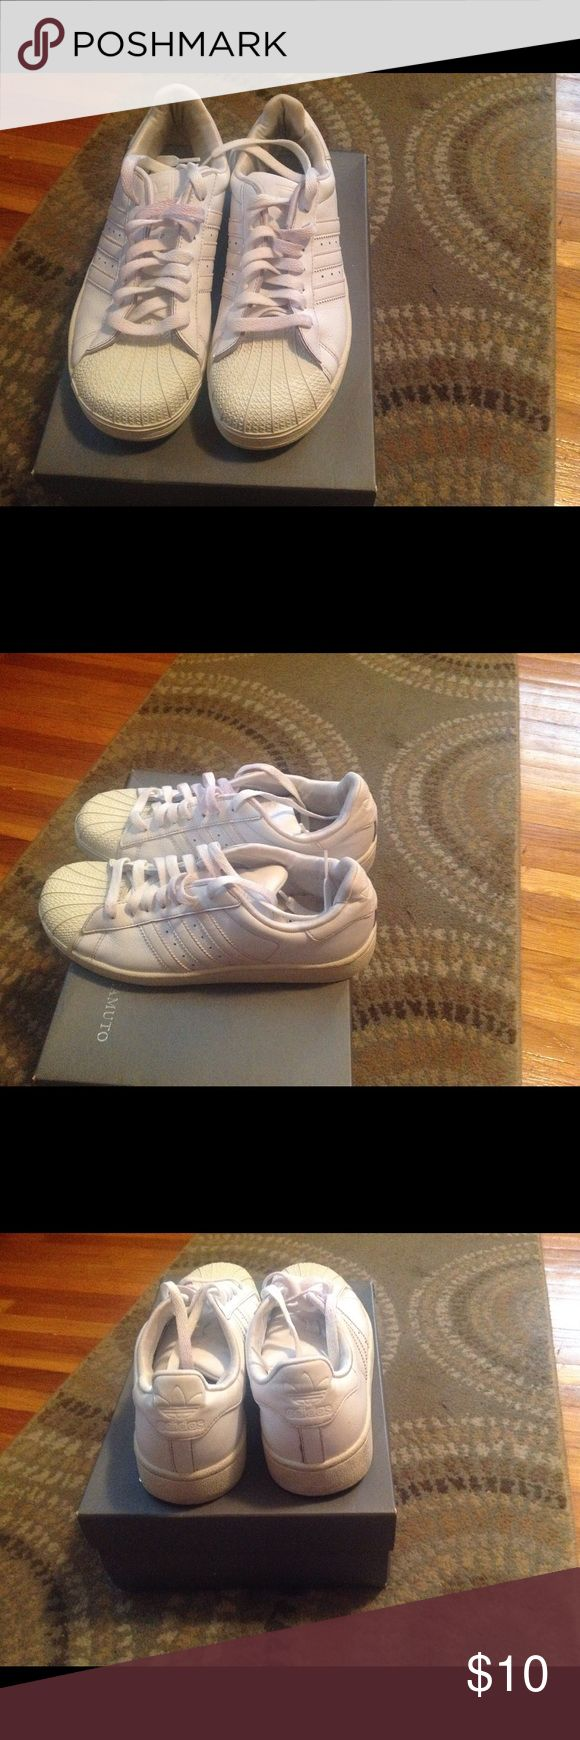 Adidas shell top sneakers AS IS adidas shell tops. Good condition, shell top a little discolored Adidas Shoes Sneakers